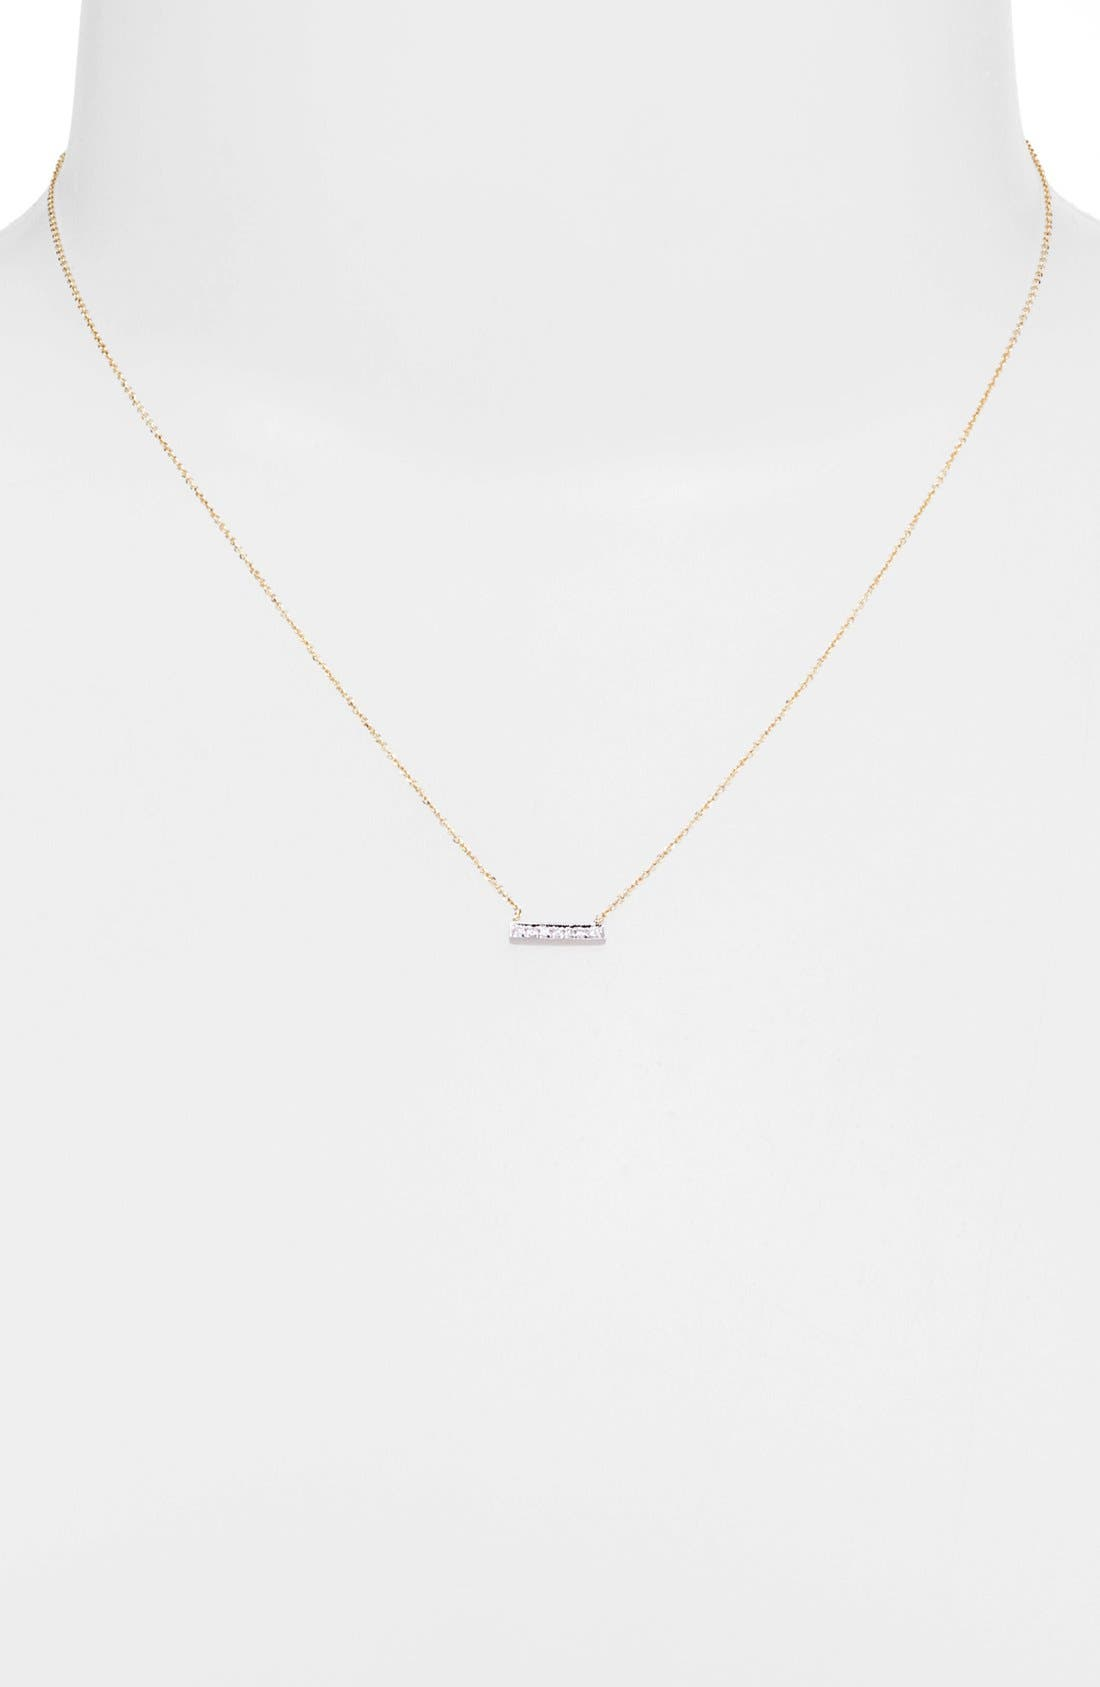 'Sylvie Rose' Diamond Bar Pendant Necklace,                             Alternate thumbnail 9, color,                             YELLOW GOLD